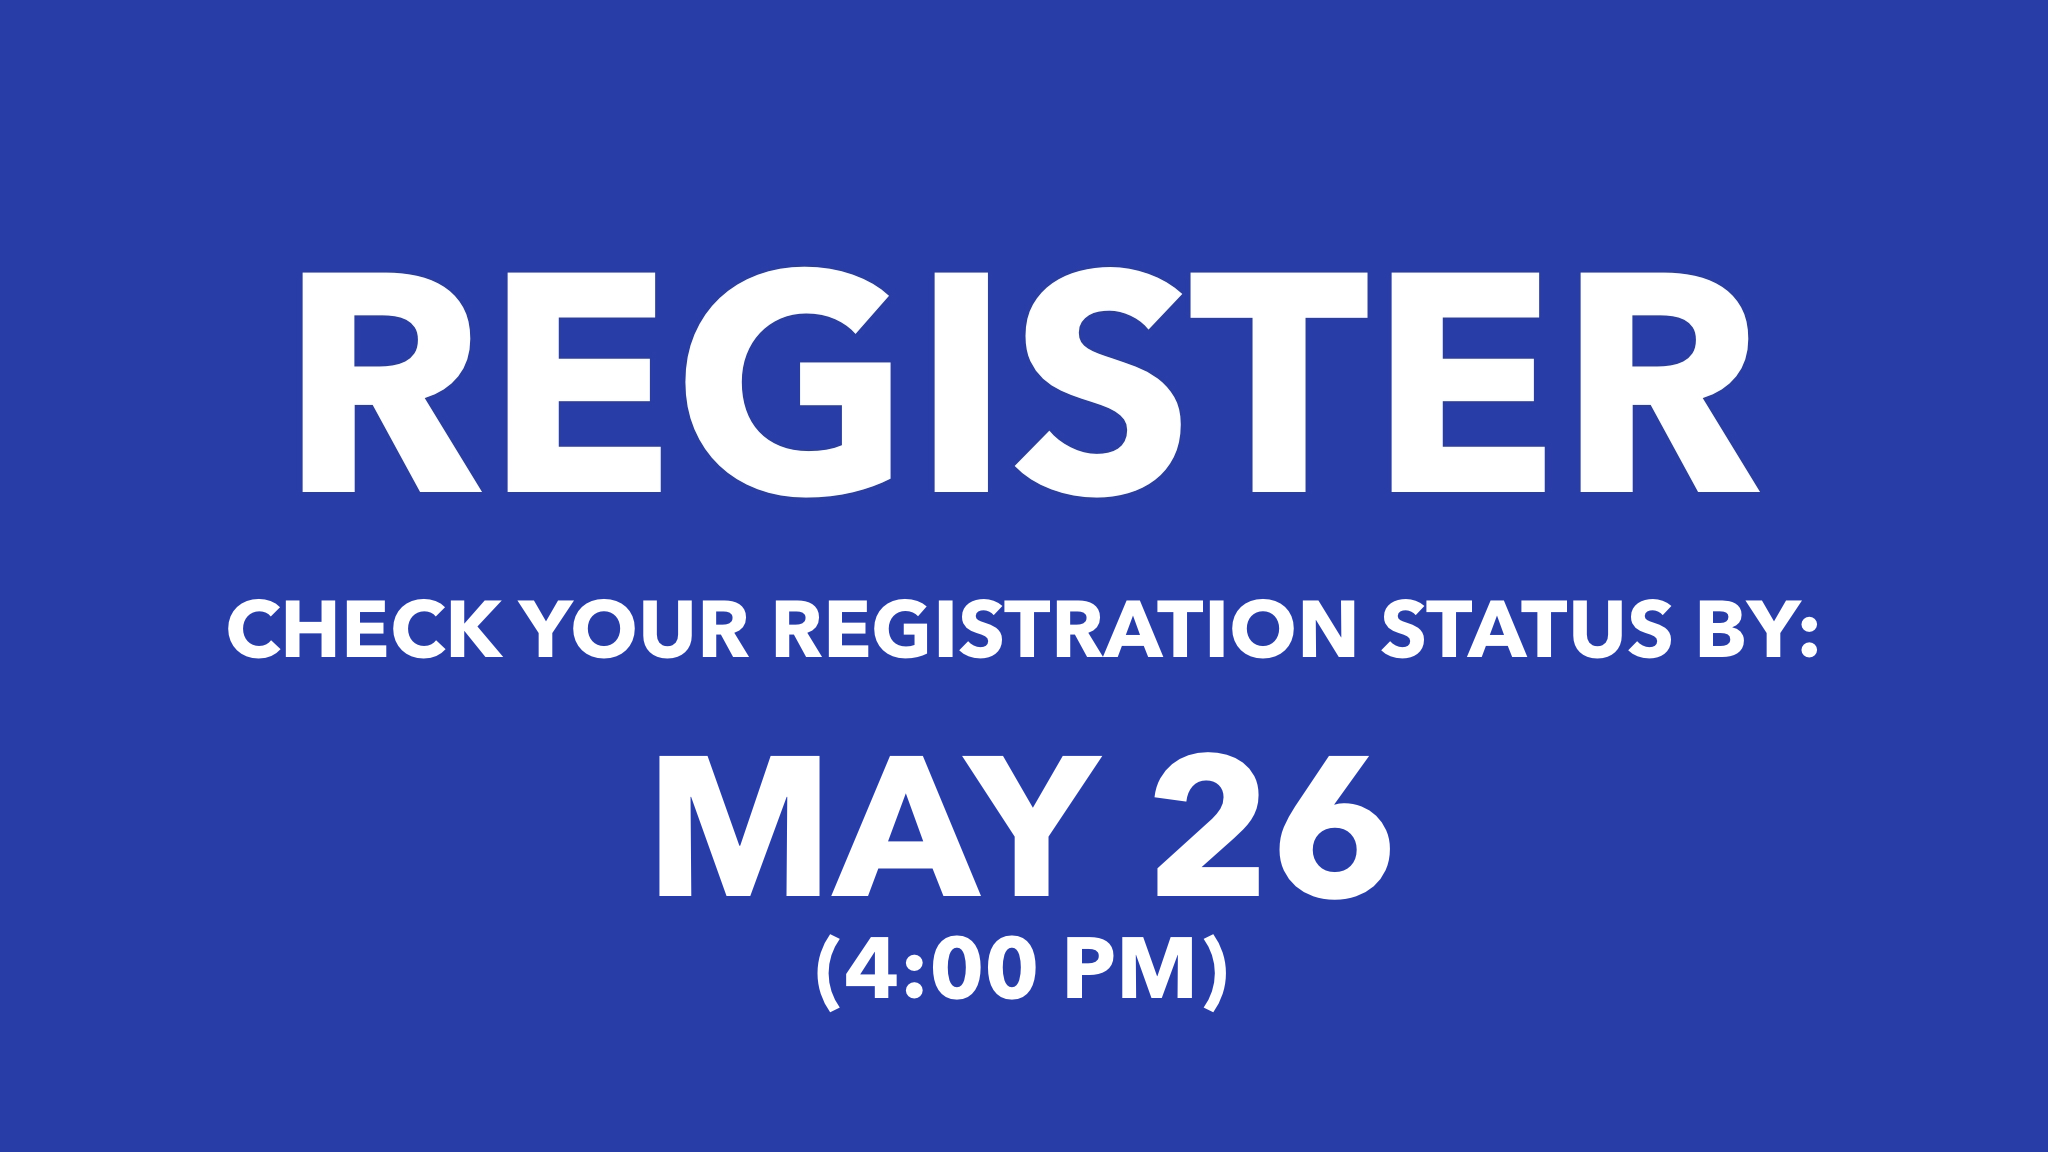 Register: Update your Registration by May 26 (4:00 PM)